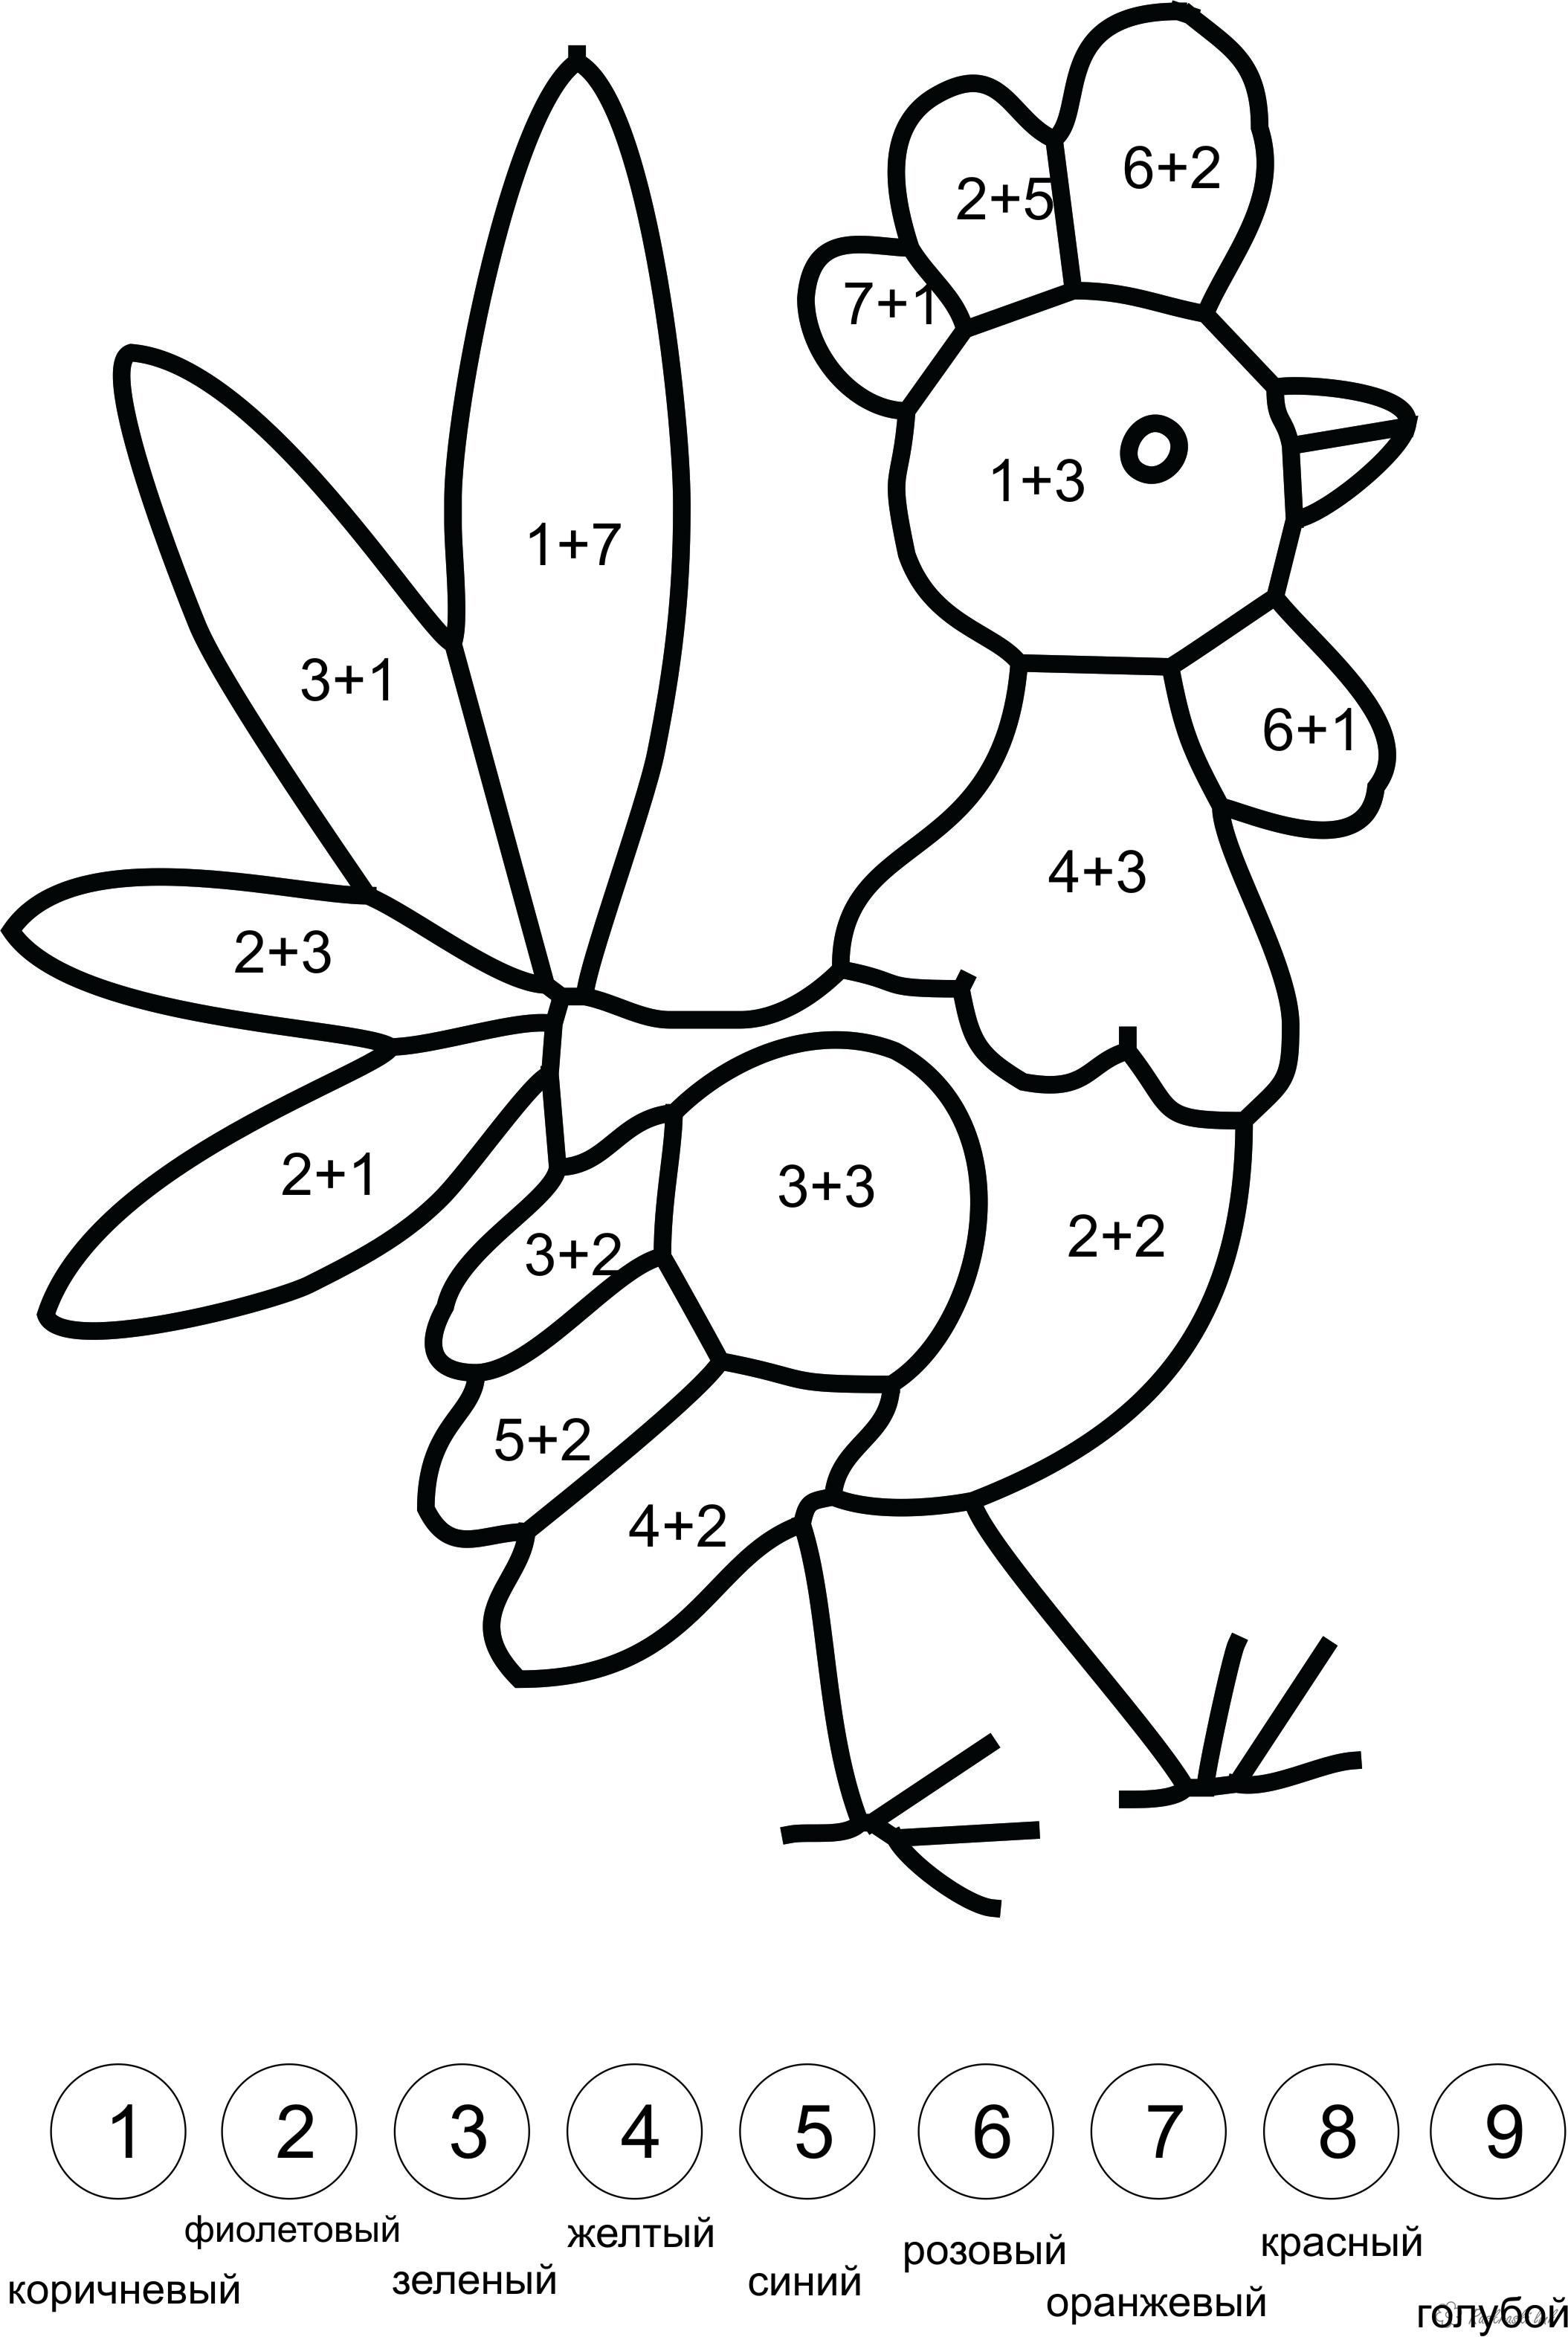 Coloring Mathematical coloring pages for preschoolers coloring pages pages for preschoolers math, educational coloring pages books, paint the rooster on the numbers